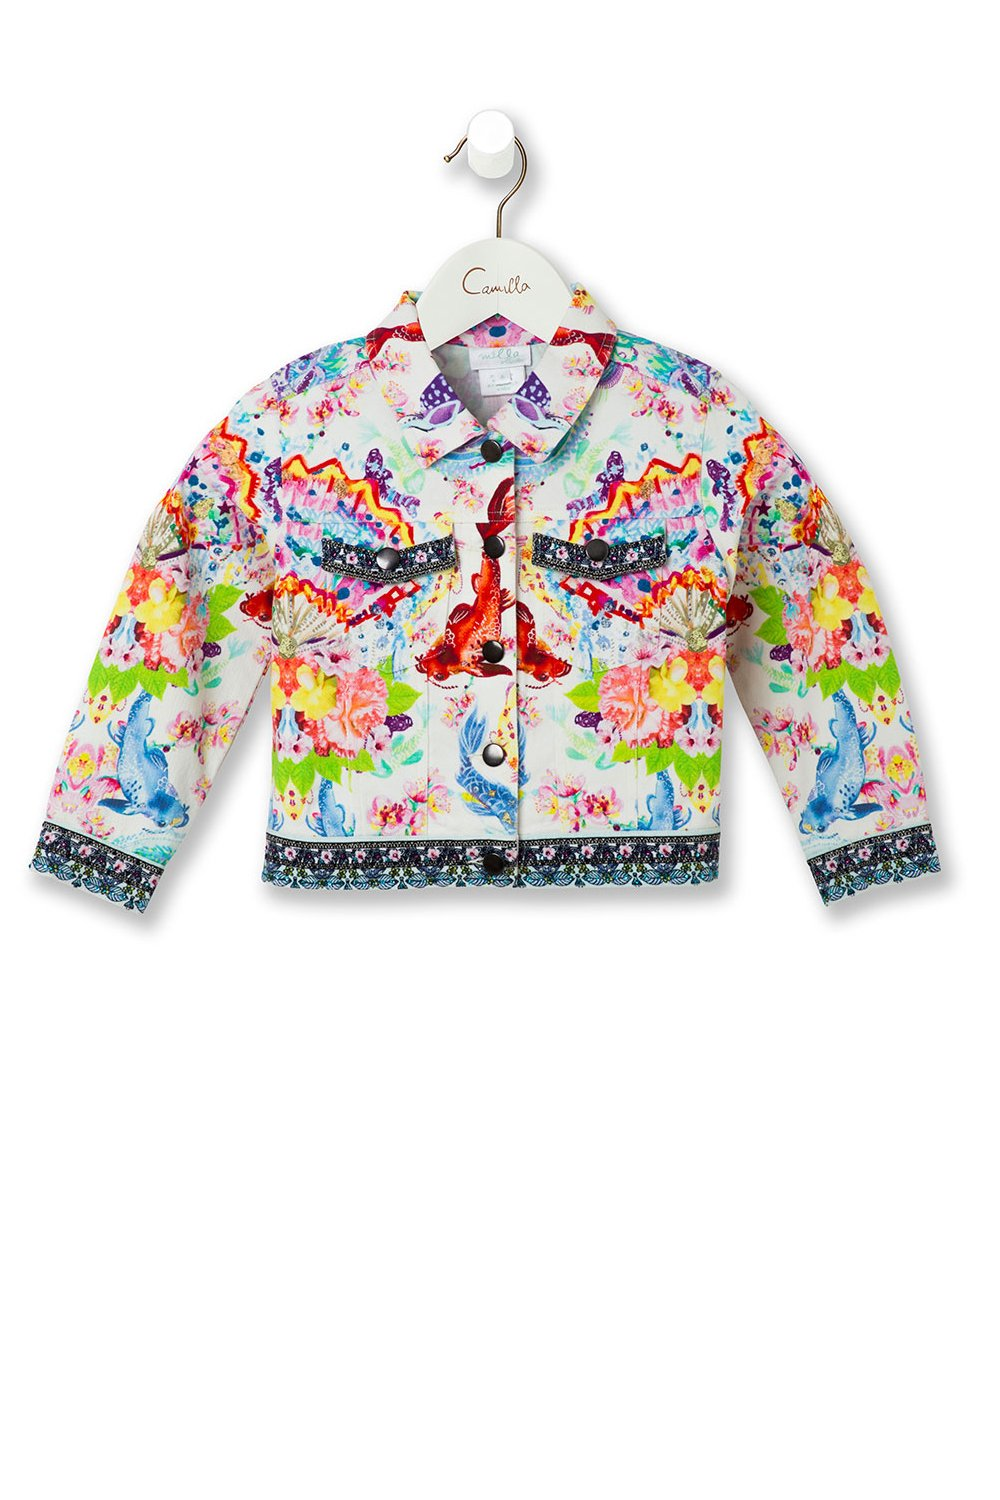 KIDS' DENIM JACKET DRAGON DIVINITY